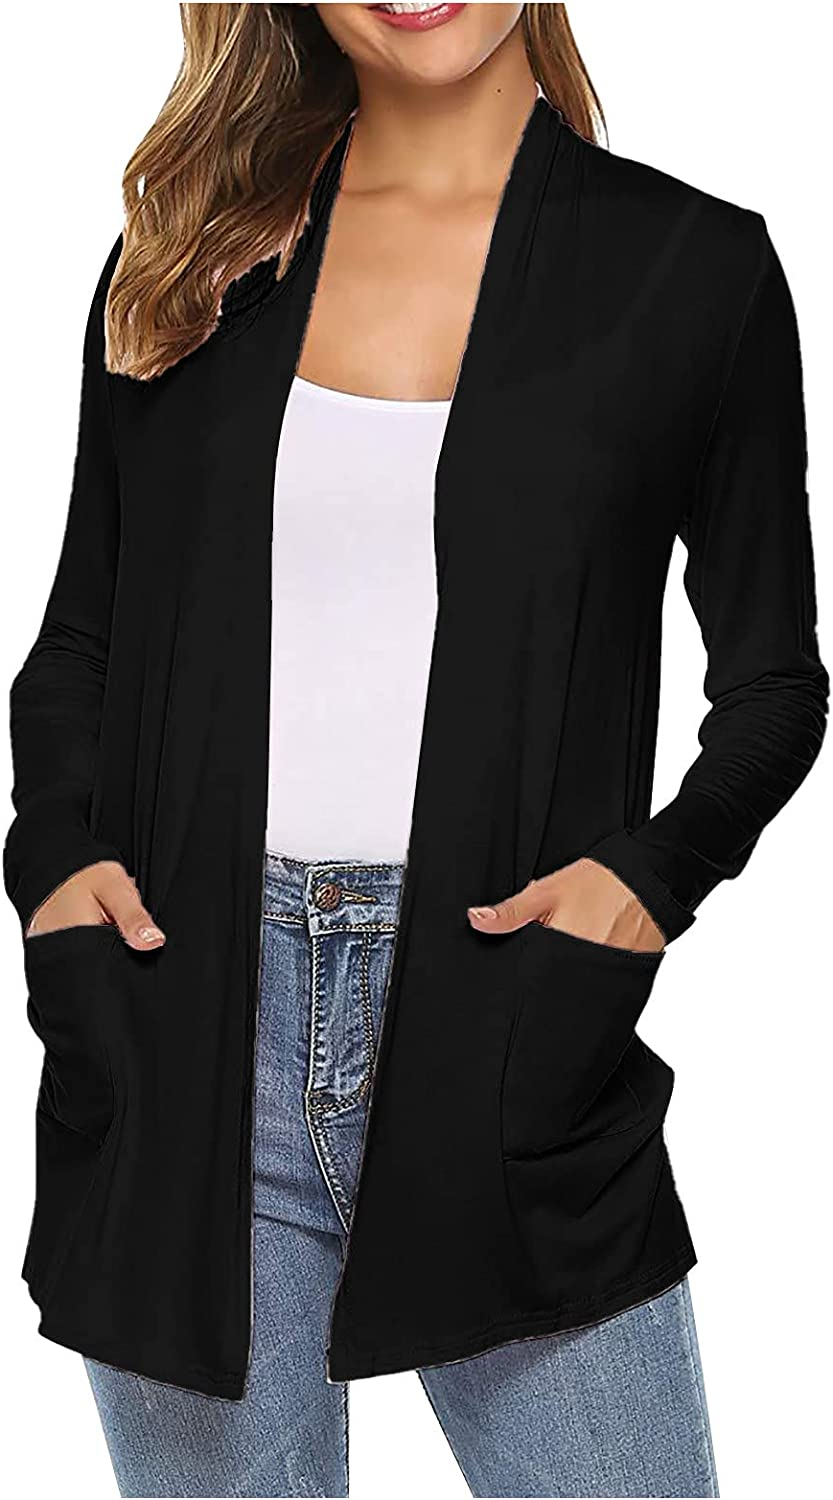 Women'S Casual Open Front Solid Color Long-Sleeved Knitted Cardigan Soft And Comfortable Jacket Outer Tyre